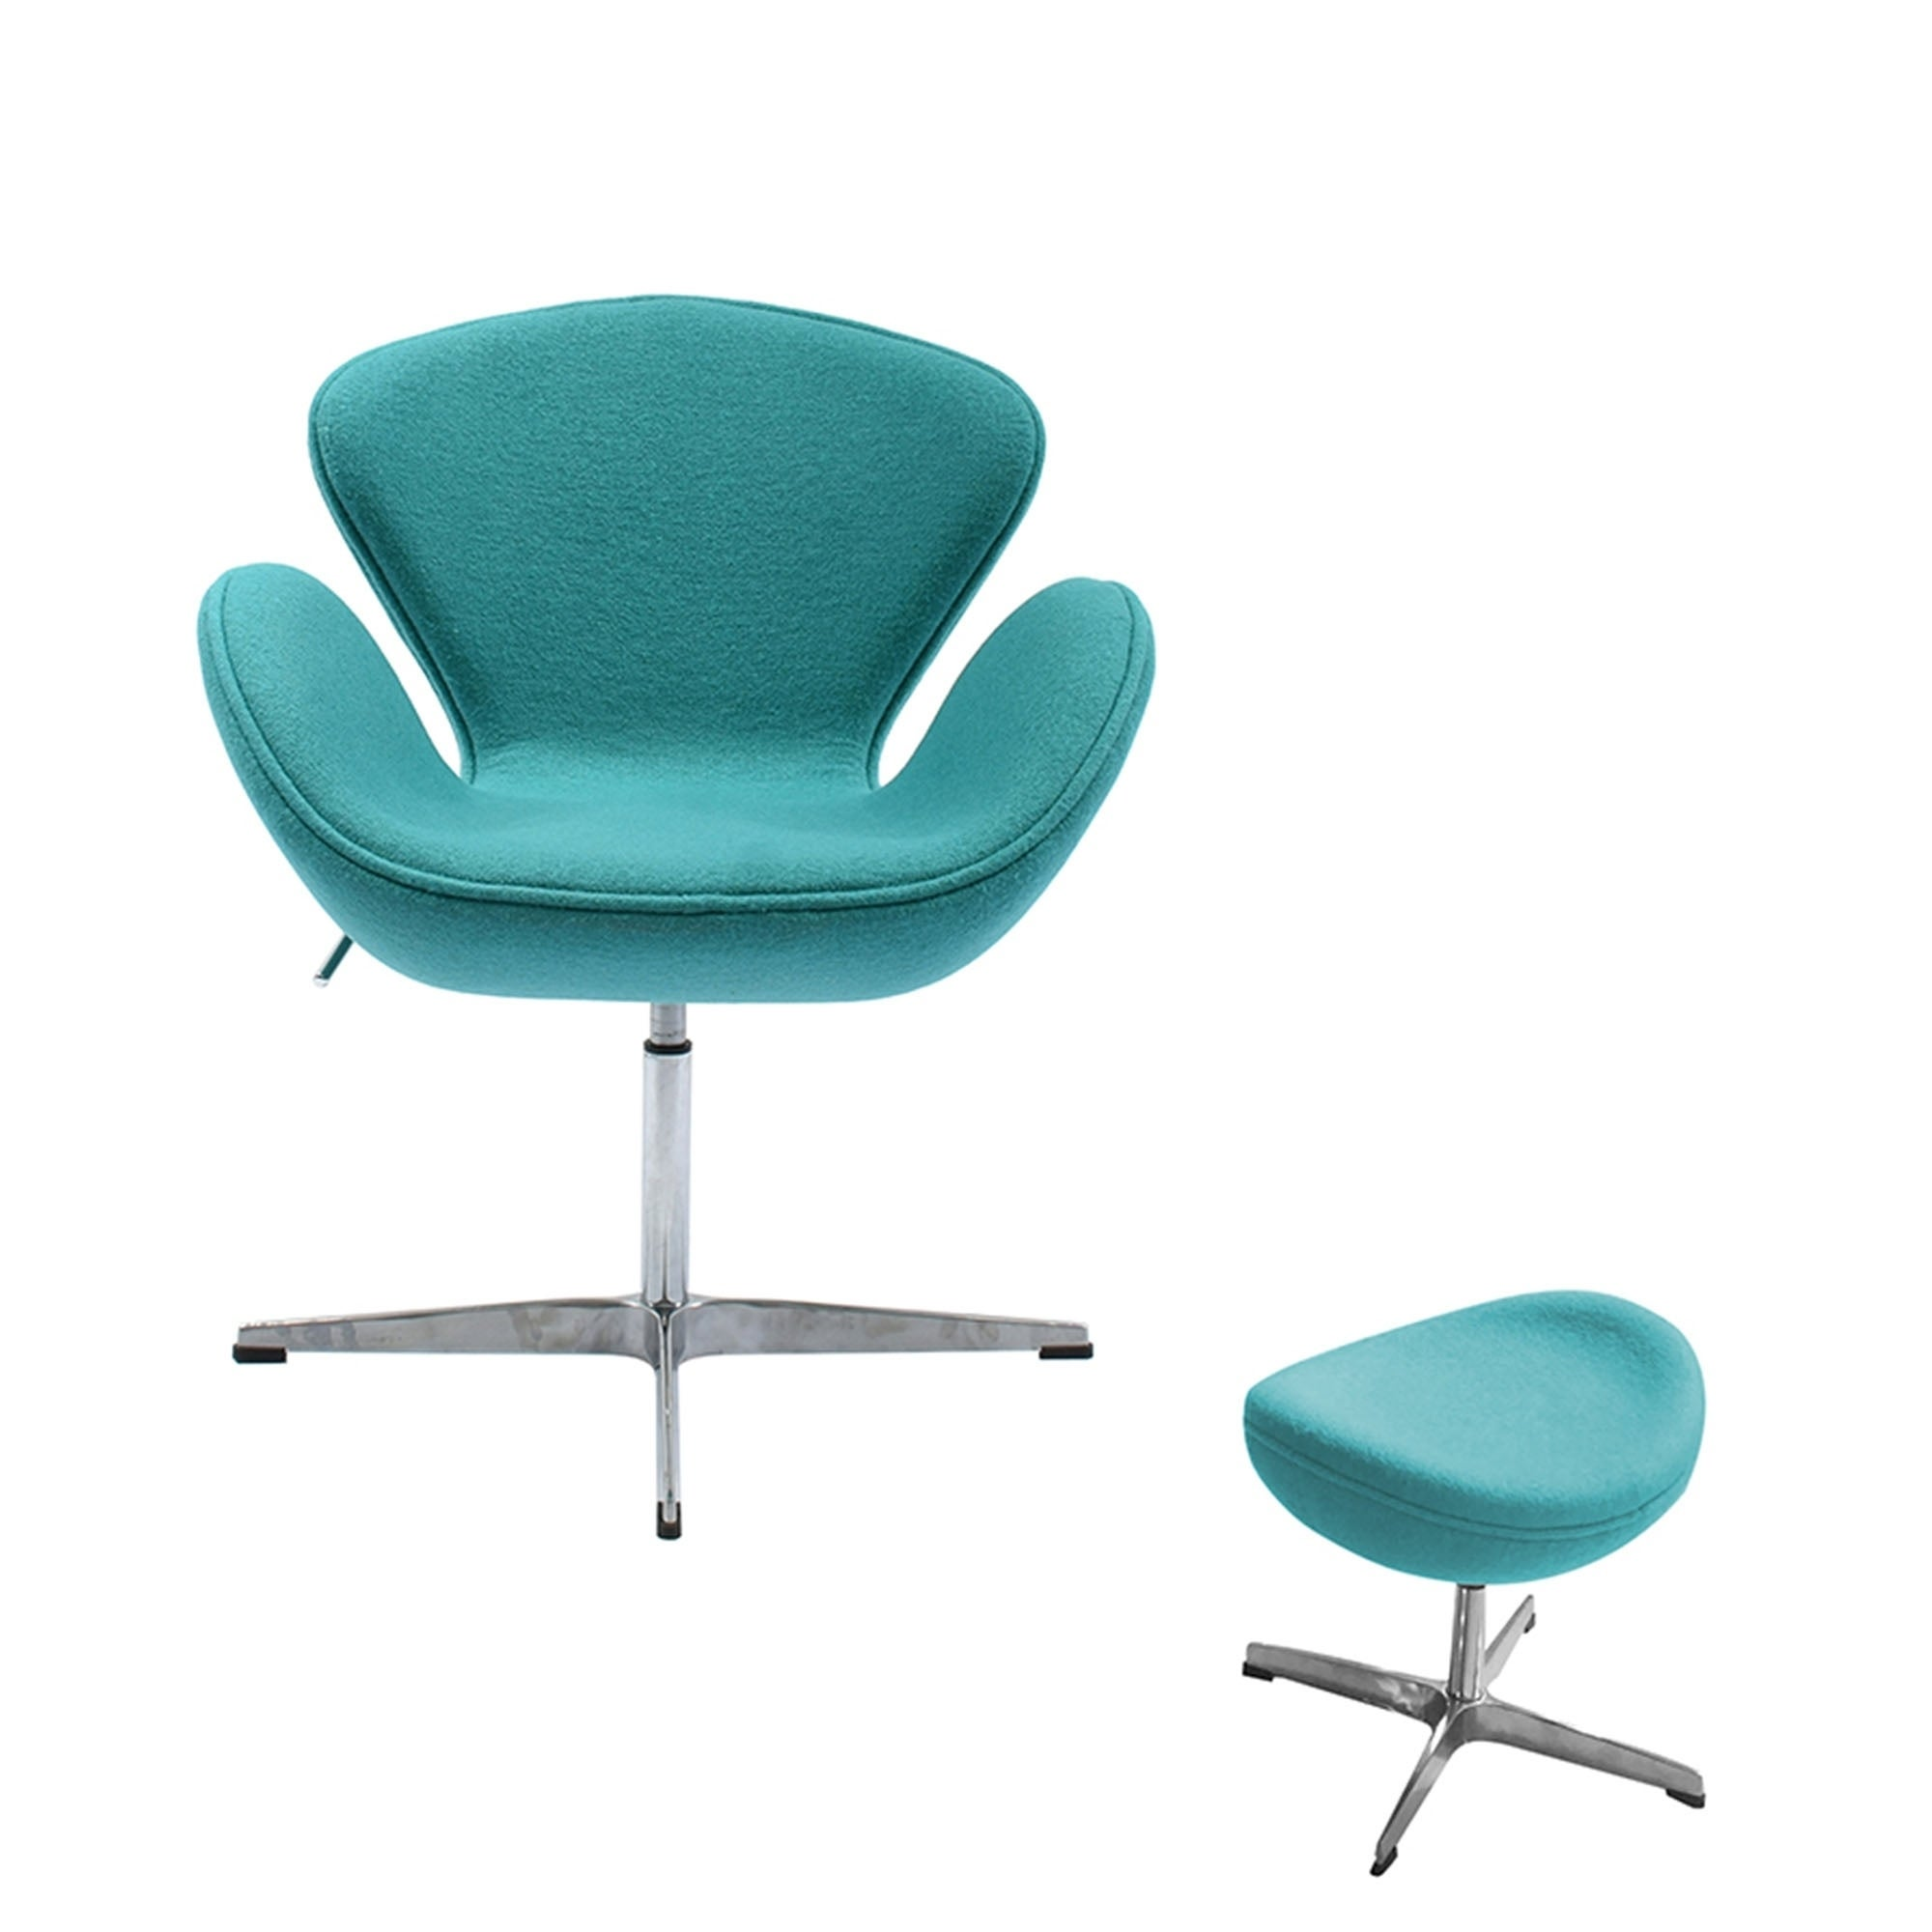 Swan Chair Swivel Height Adjustable Lounge Chair Cashmere  sc 1 st  Overstock.com & Shop Swan Chair Swivel Height Adjustable Lounge Chair Cashmere ...